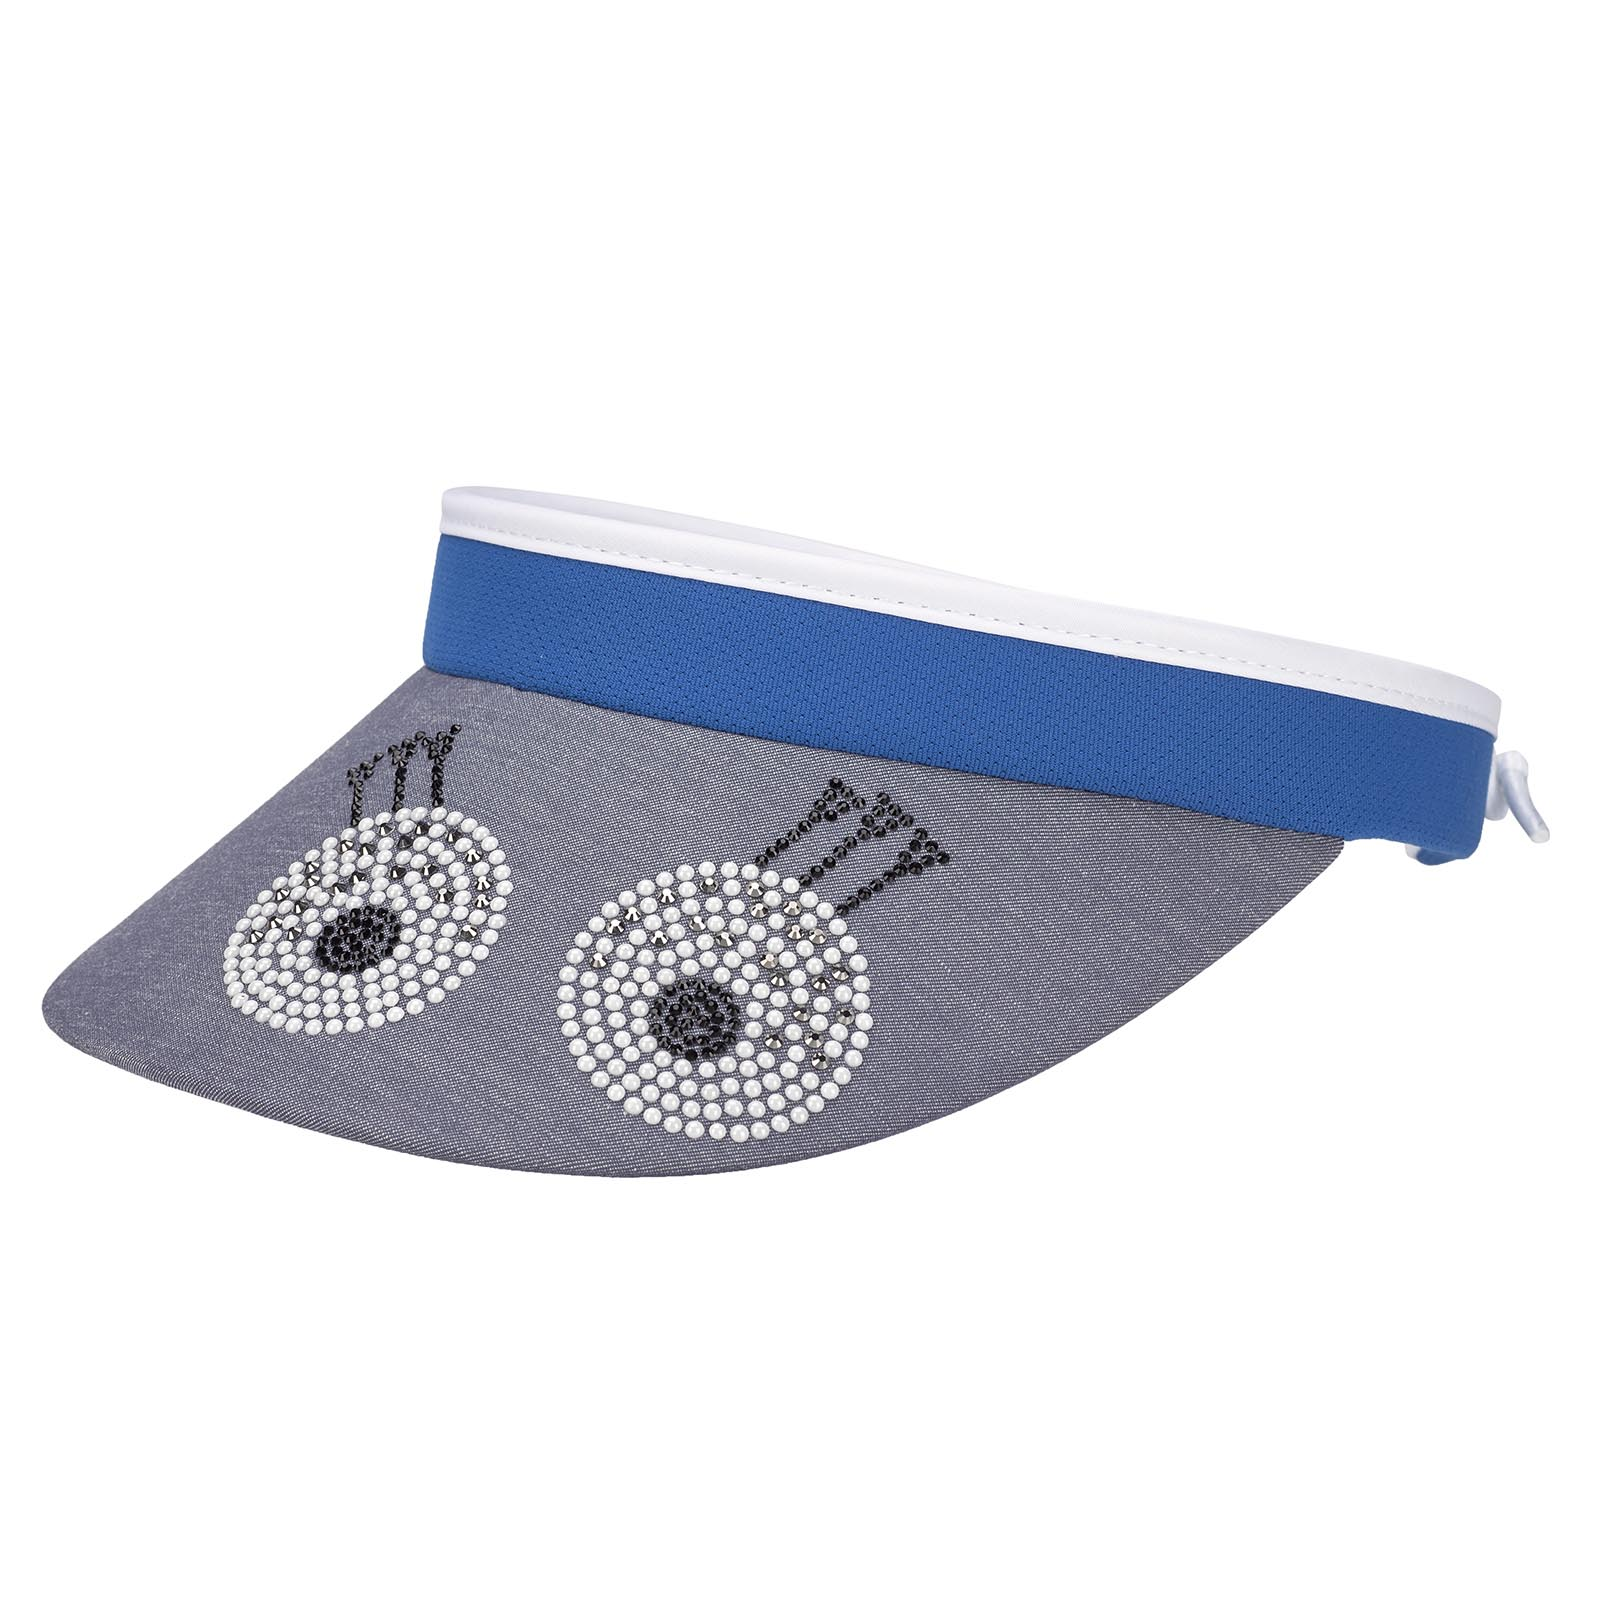 Damen Retro Golf Cable Visor mit Schirm in Denim-Optik und Glitzerbesatz